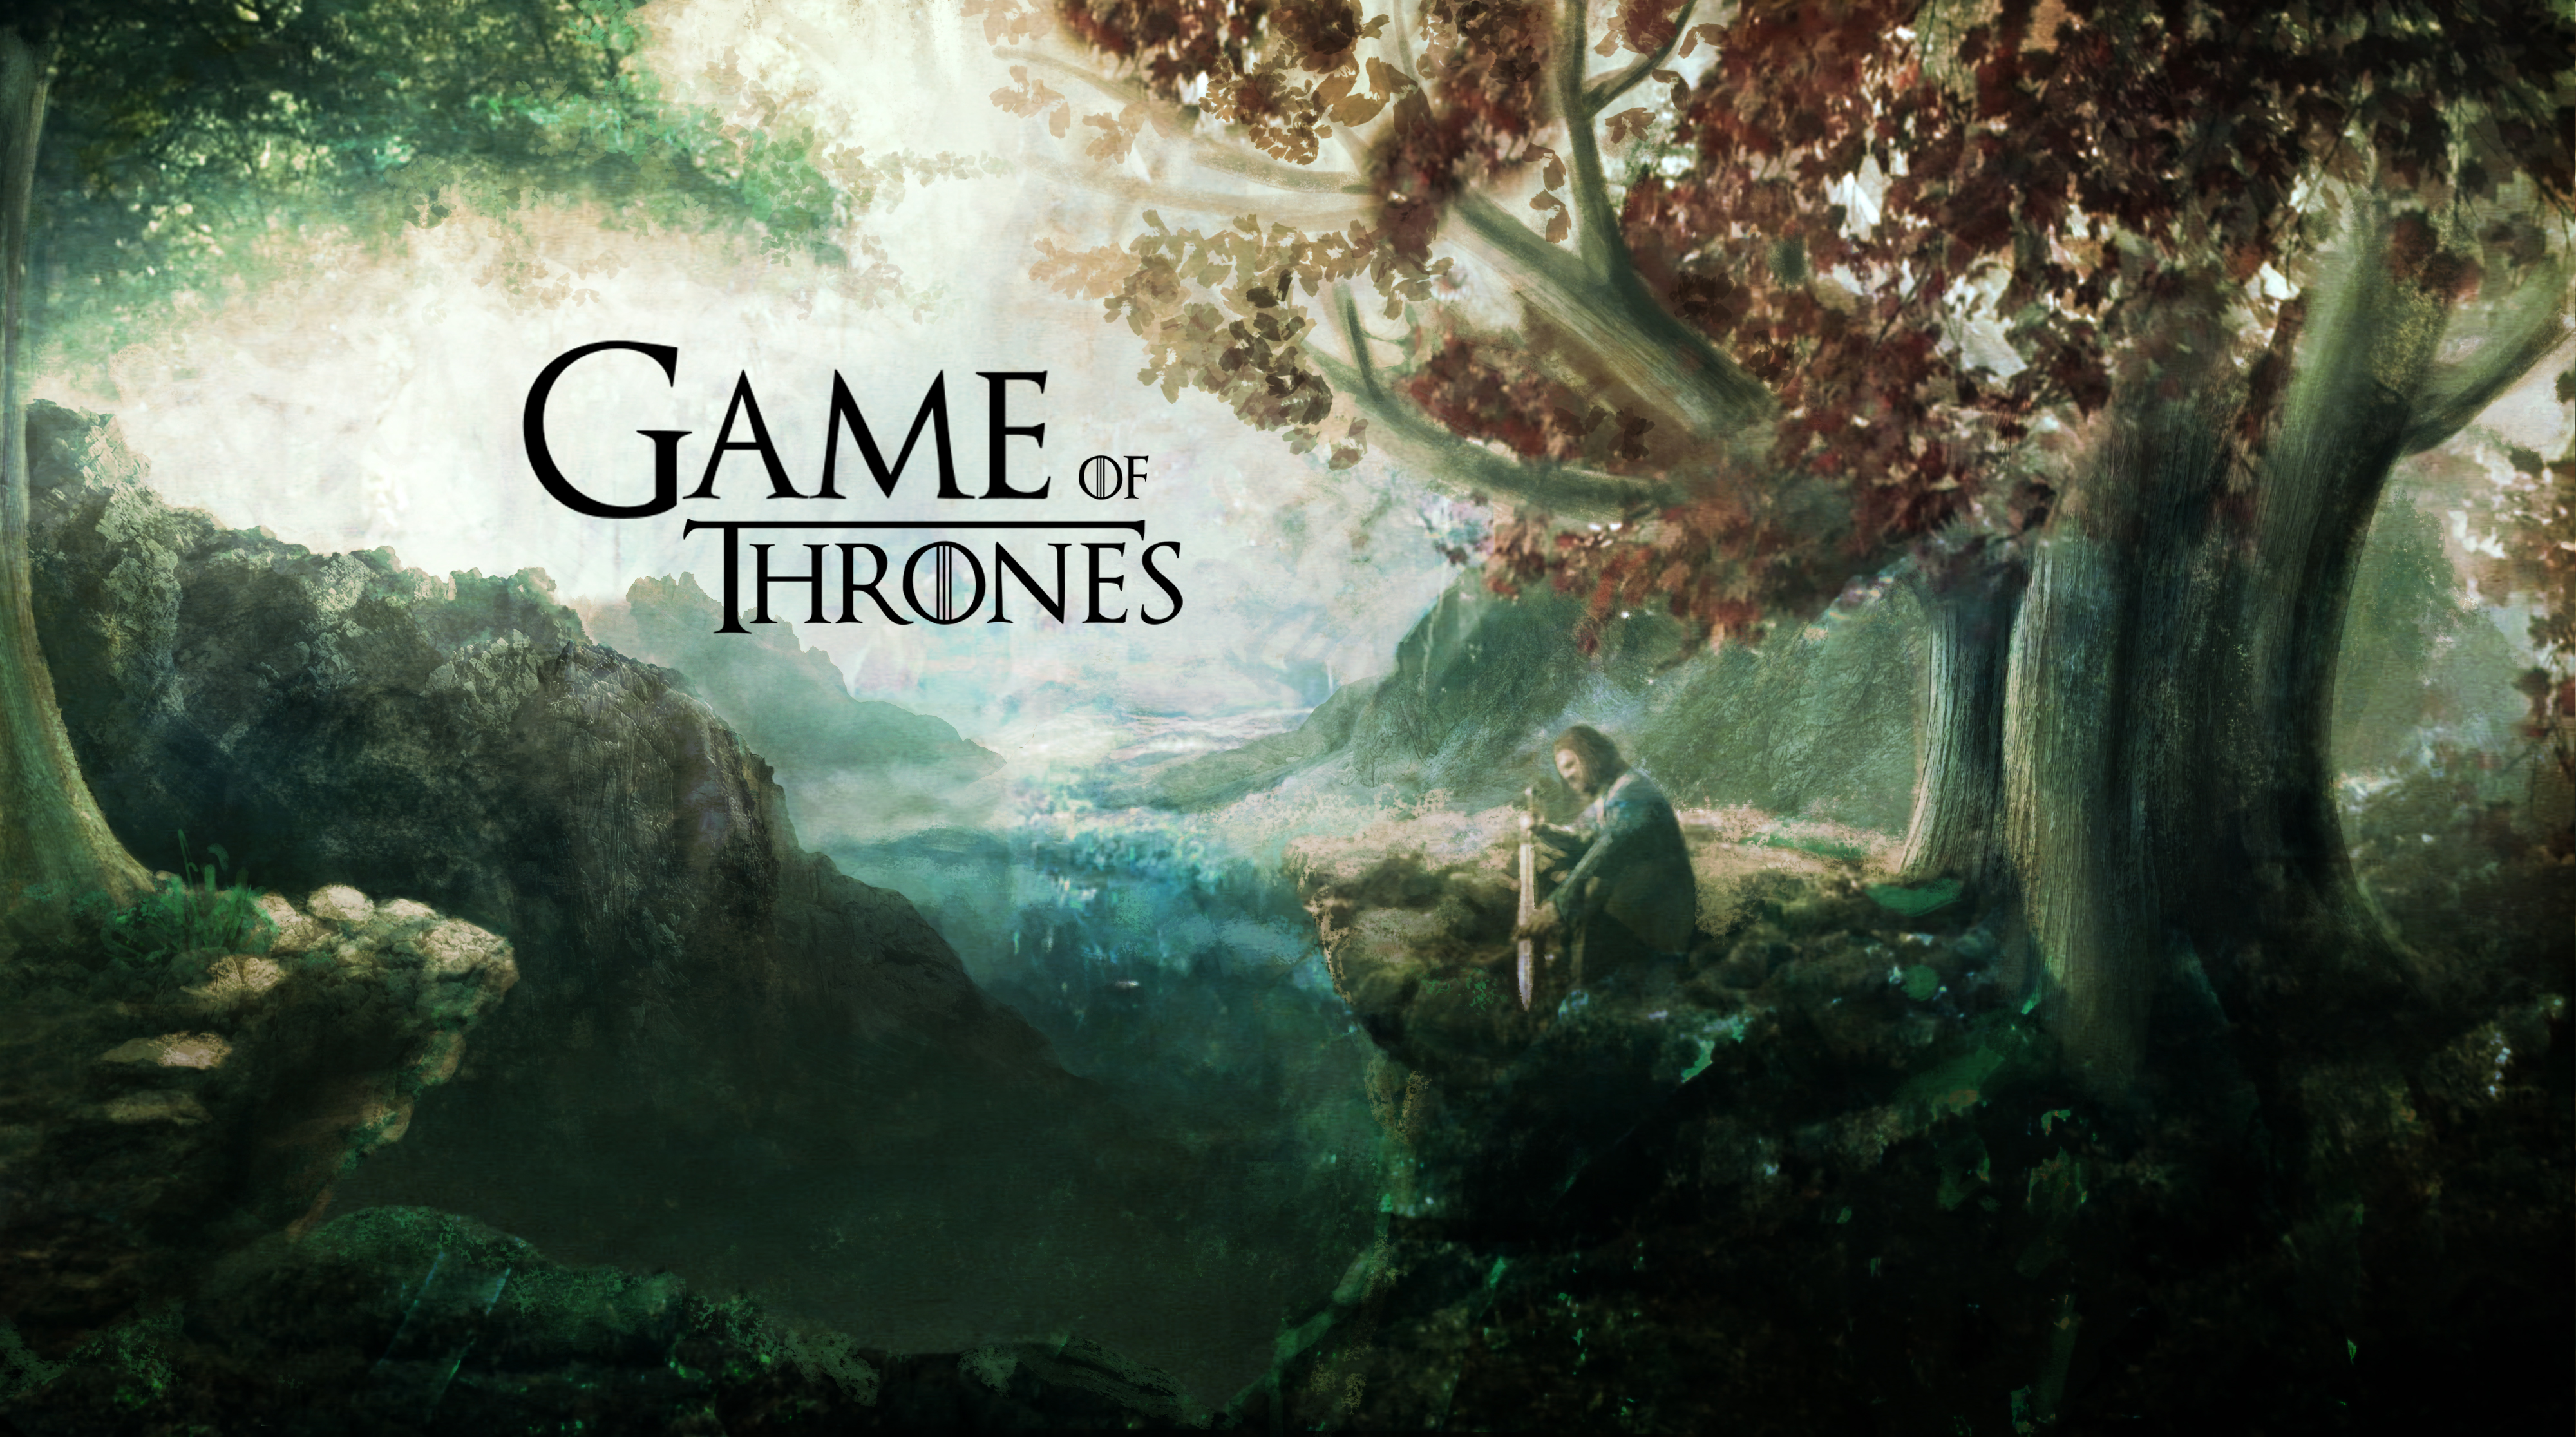 Desktop Mobiles Tablets - Game Of Thrones Ps4 Background , HD Wallpaper & Backgrounds